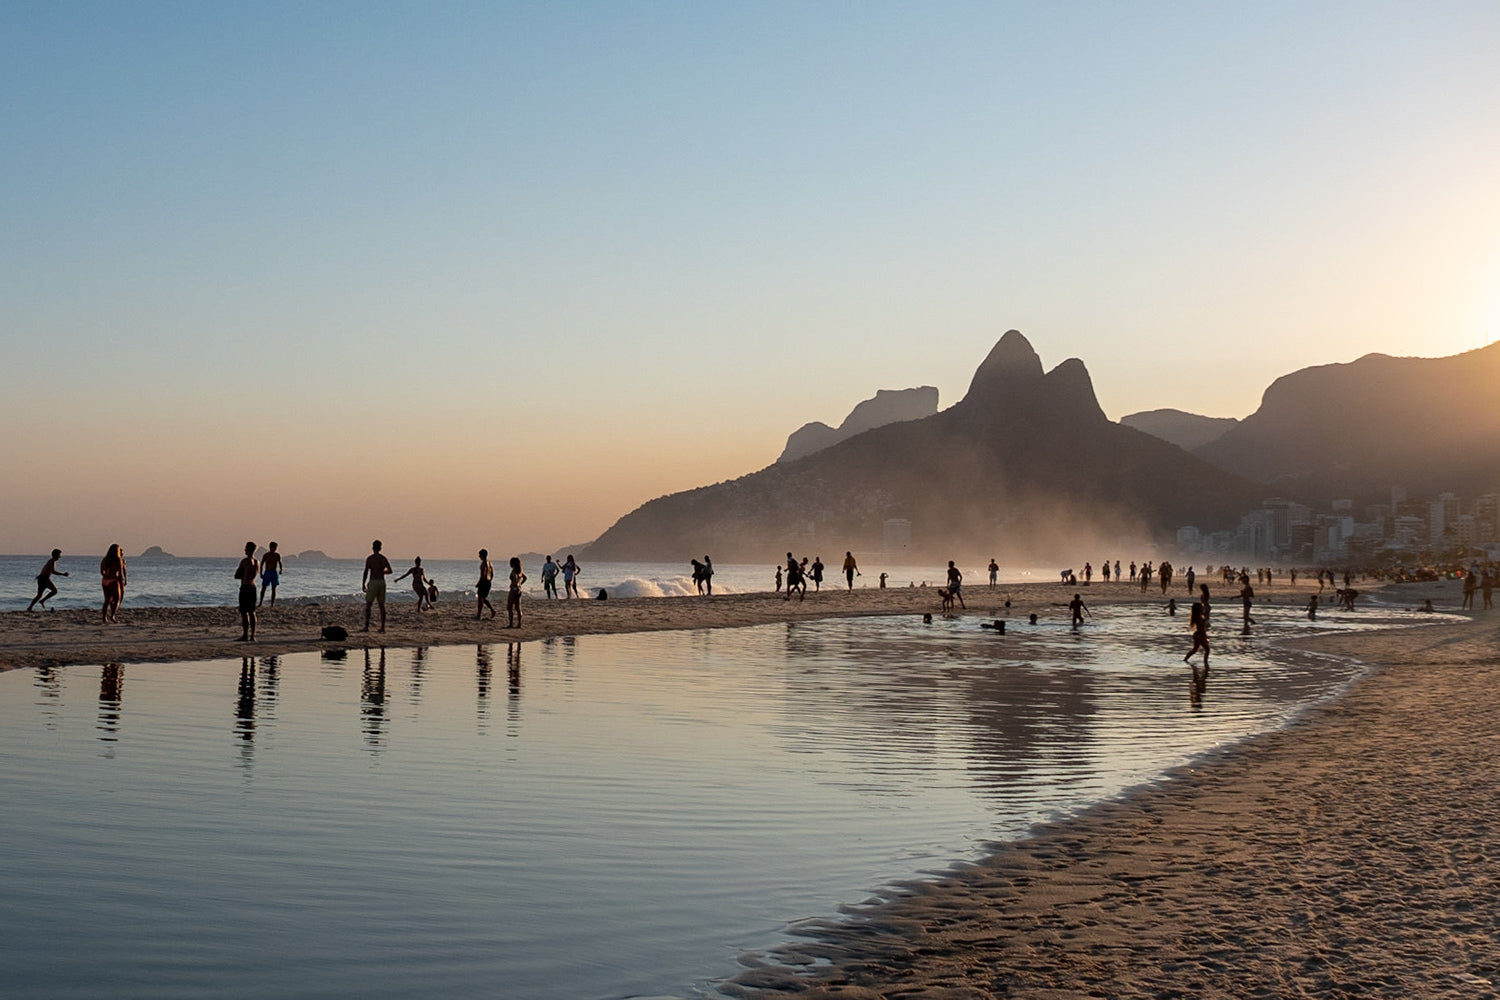 Silhouettes of beachgoers enjoying the sunset on Ipanema Beach, looking towards Twin brothers mountain in Rio de Janeiro, Brazil.